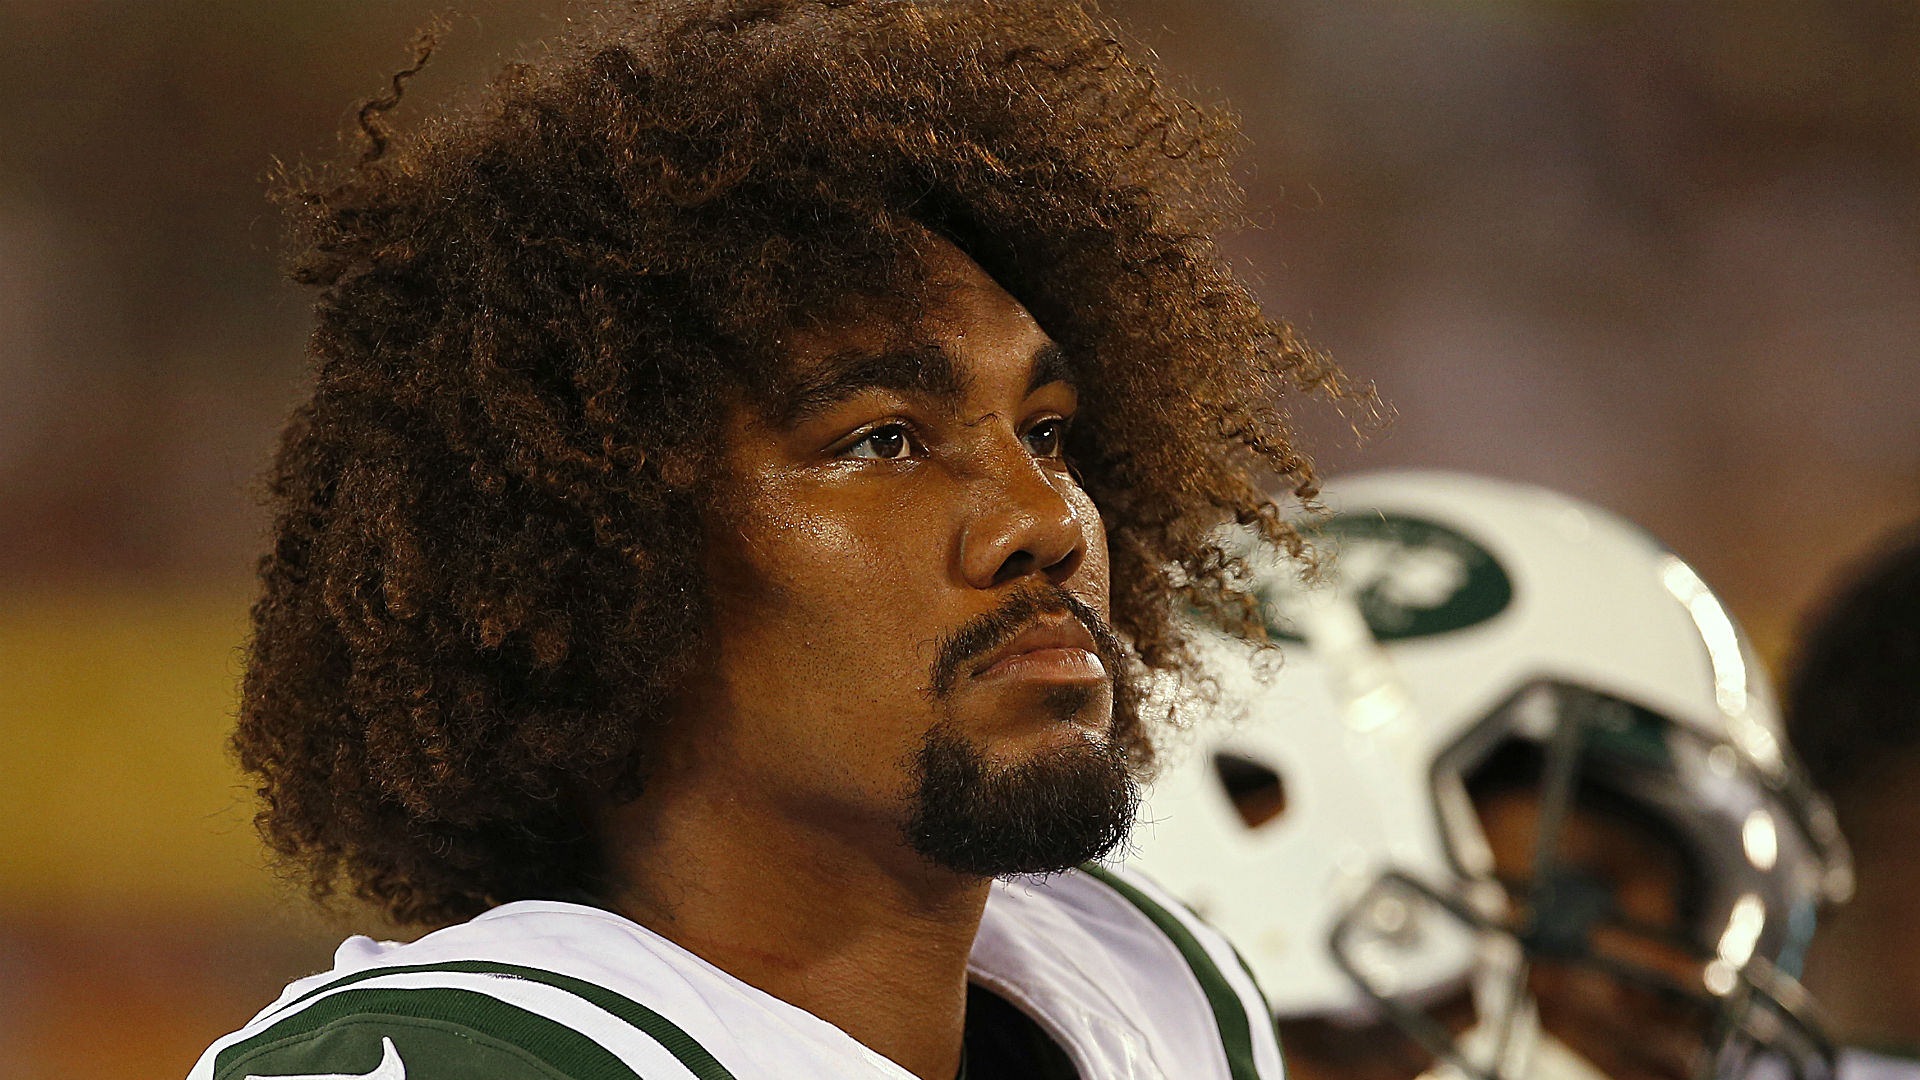 Video shows Jets' Leonard Williams allegedly restraining teammate Darron Lee